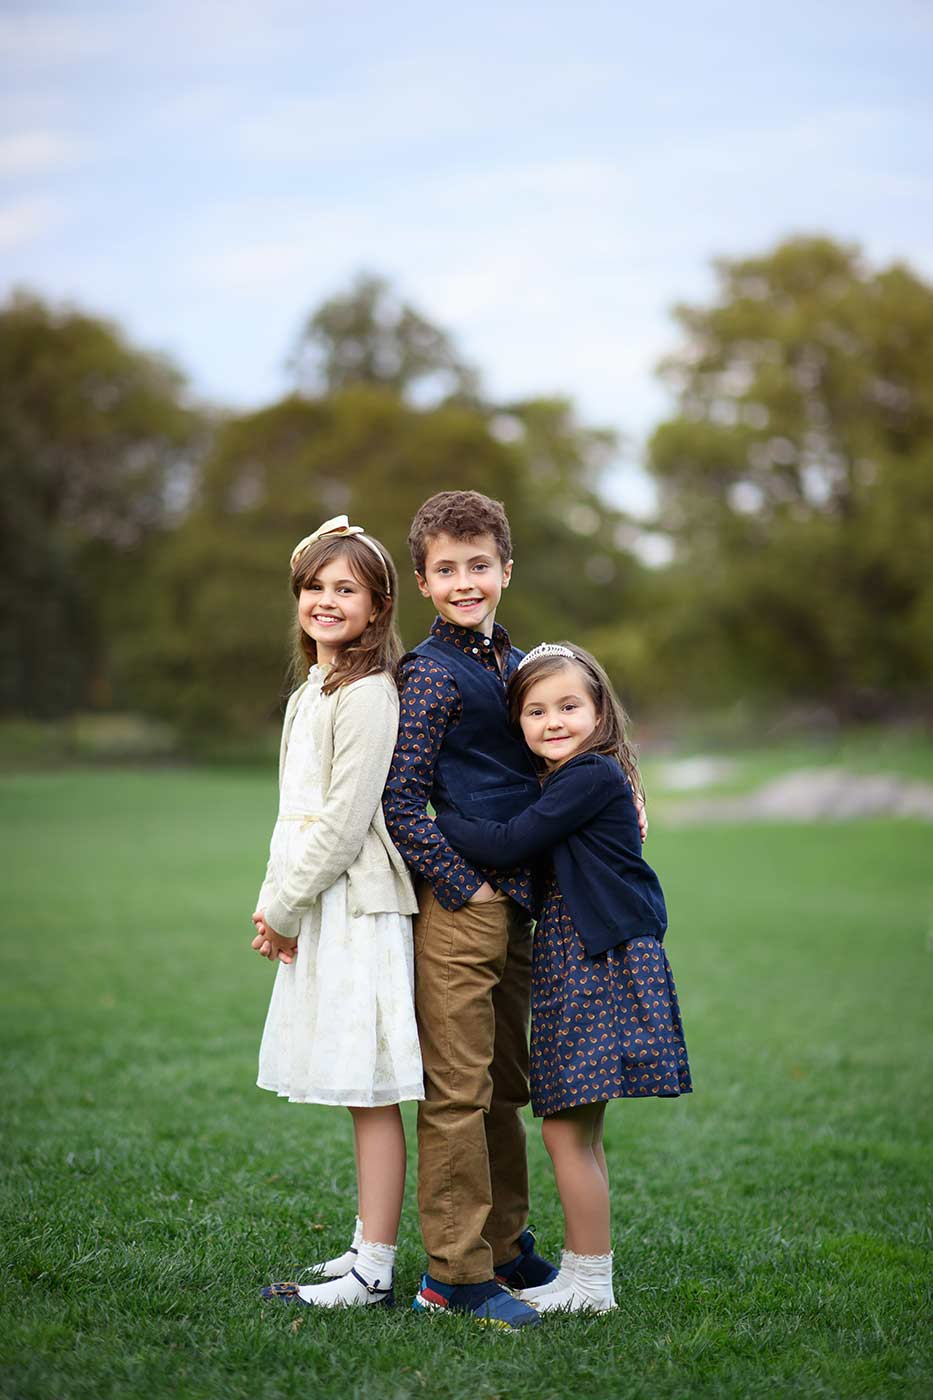 Brother and his sisters posing for a photo in Central Park's meadow